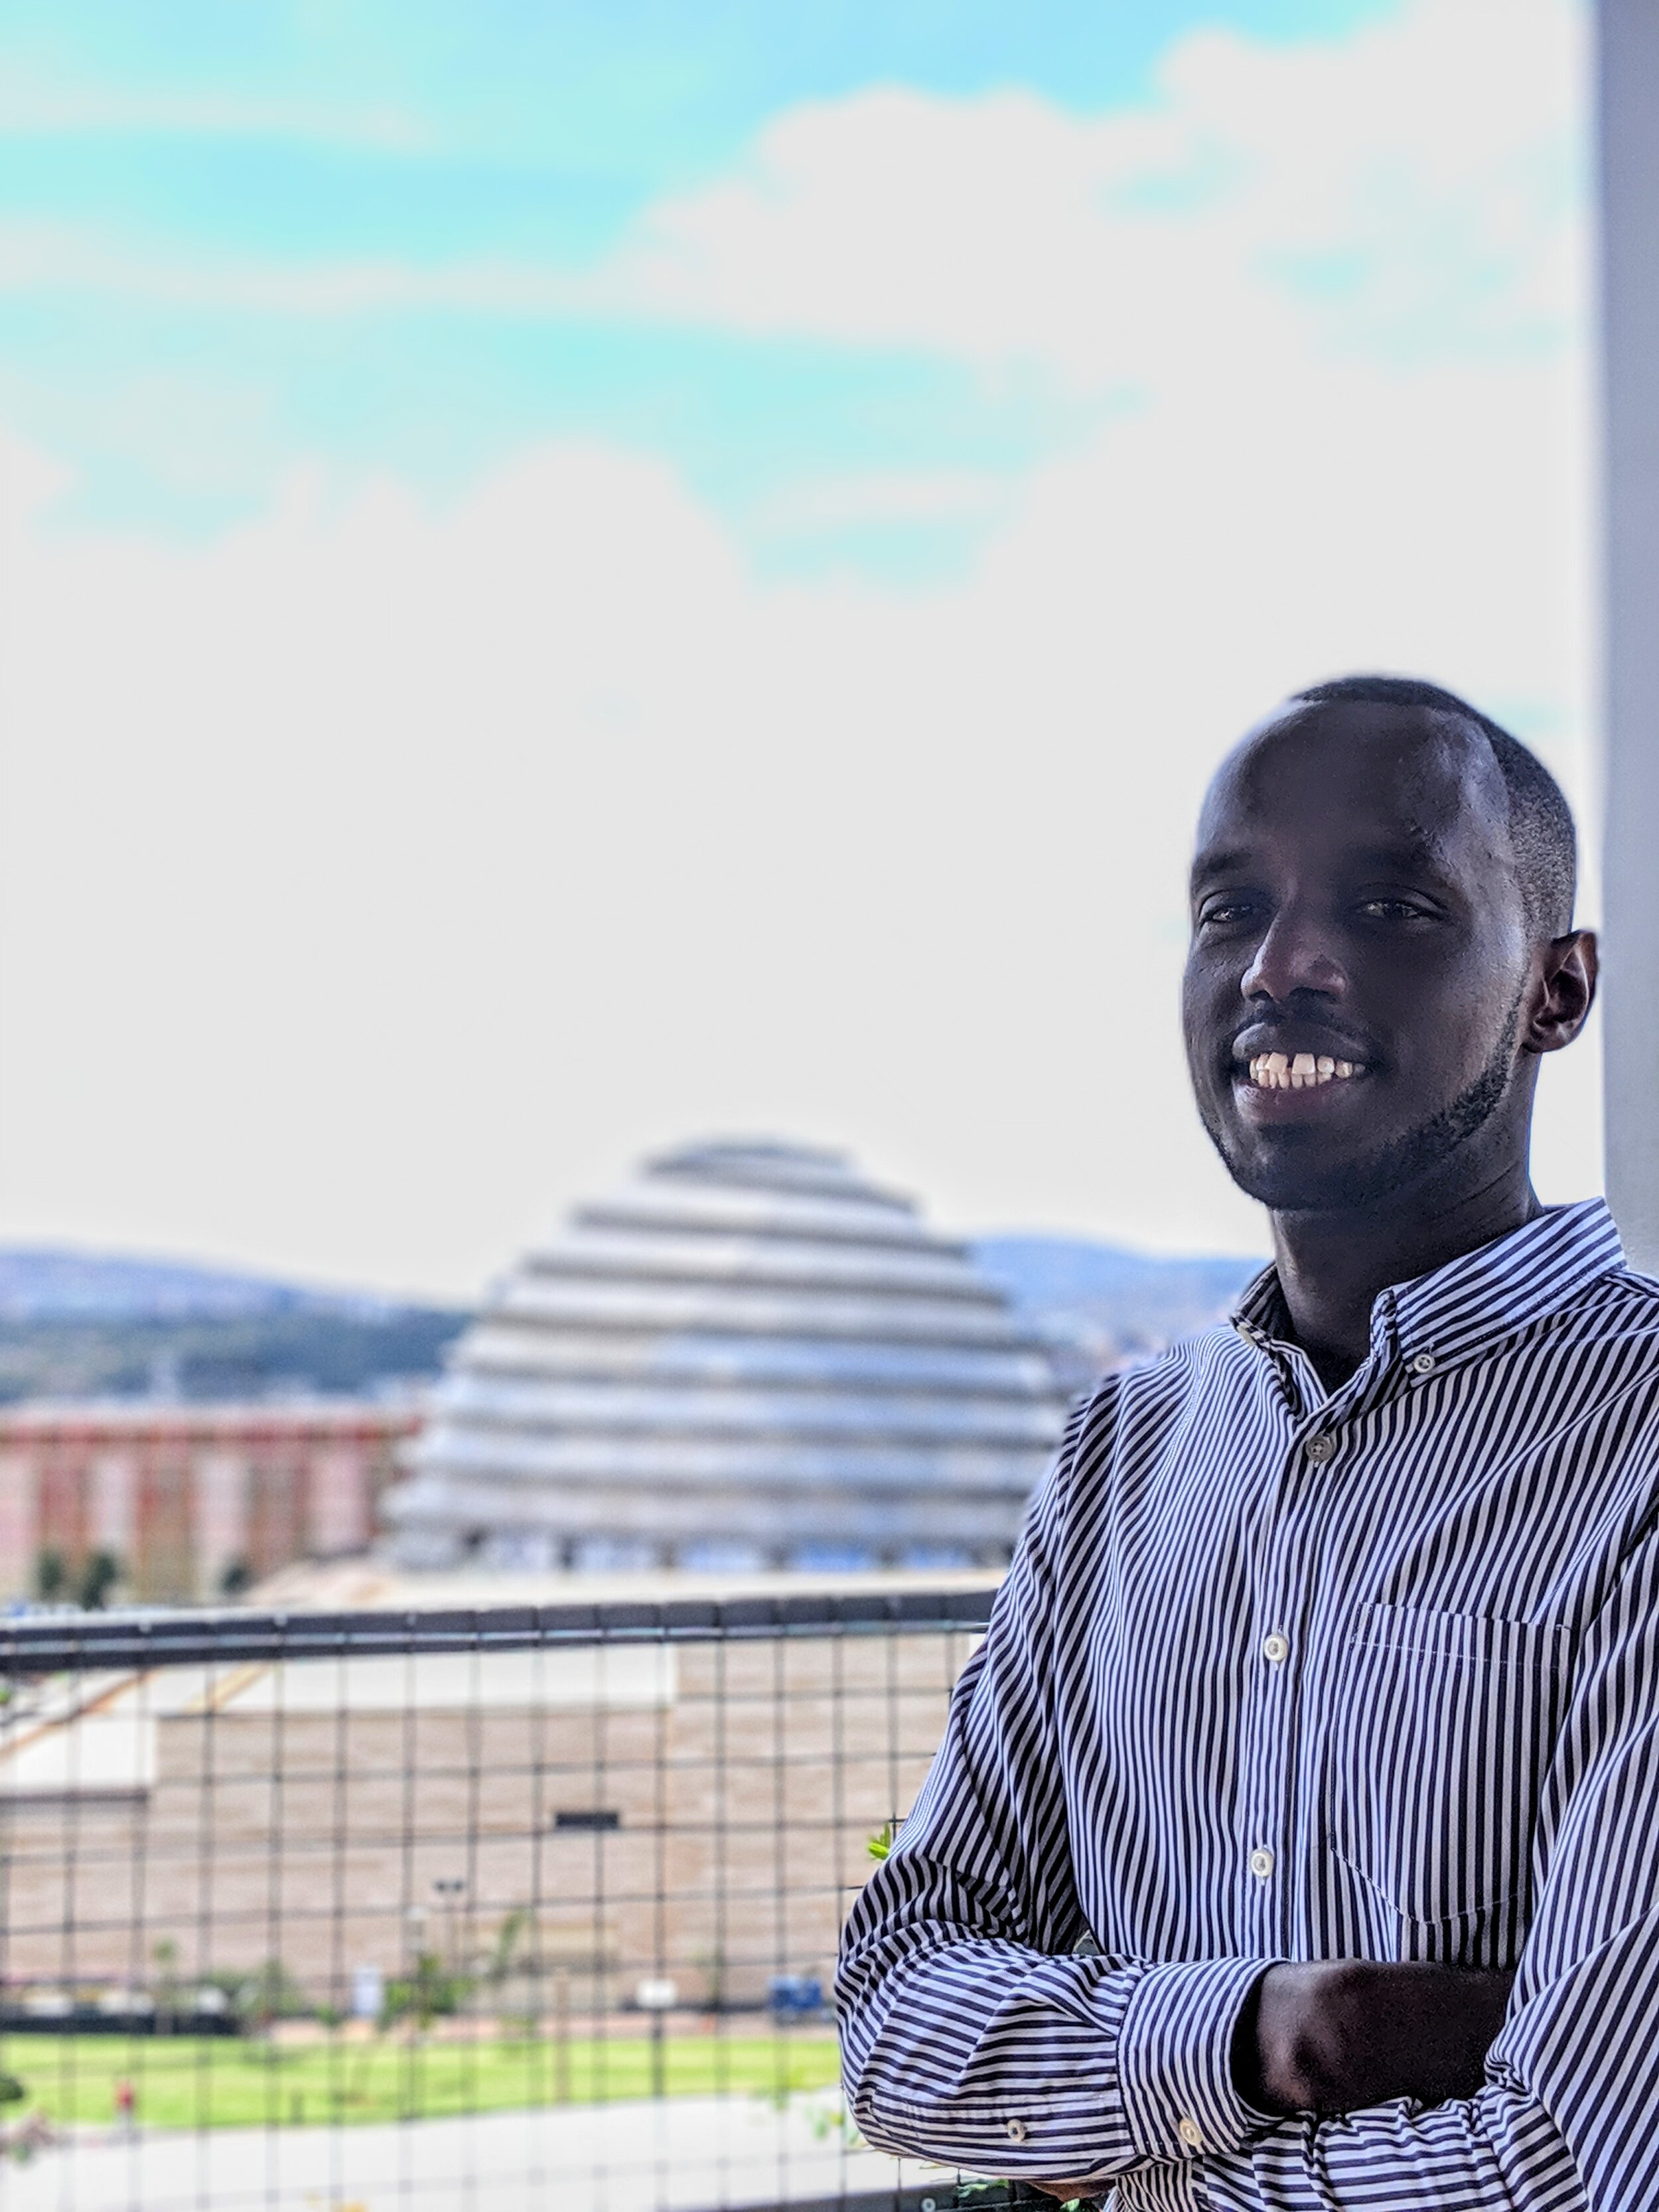 Florent Bizibishaka - He Is BeneFactors accountant. He is an ACCA certified professional accountant and has a bachelor degree of arts in economics. He is passionate about finance, accounting but mostly portfolio management. He is creative and loves adventures.